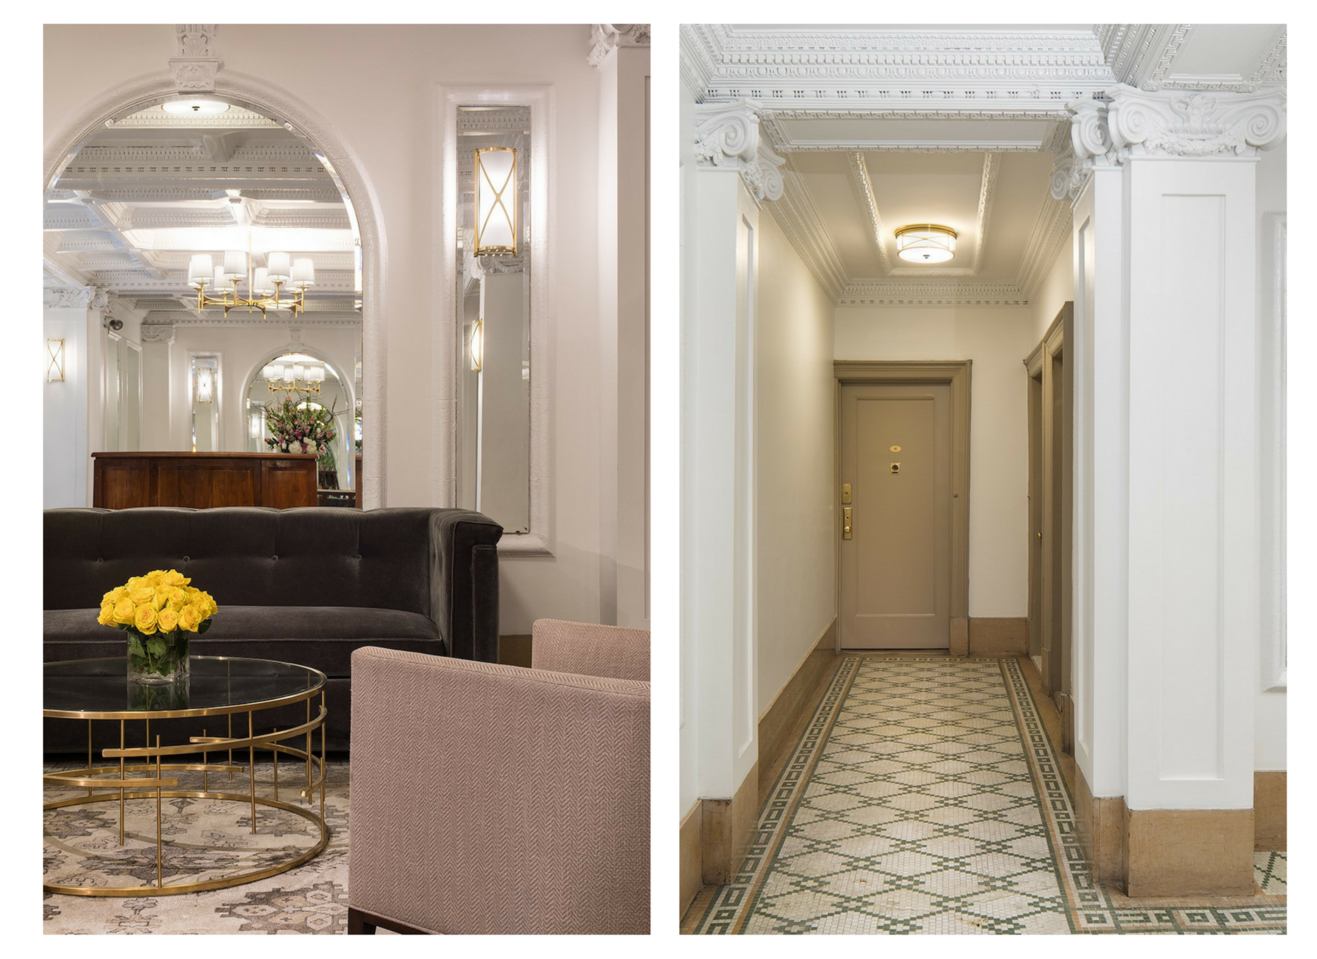 Lobby Designs in Upper West Side